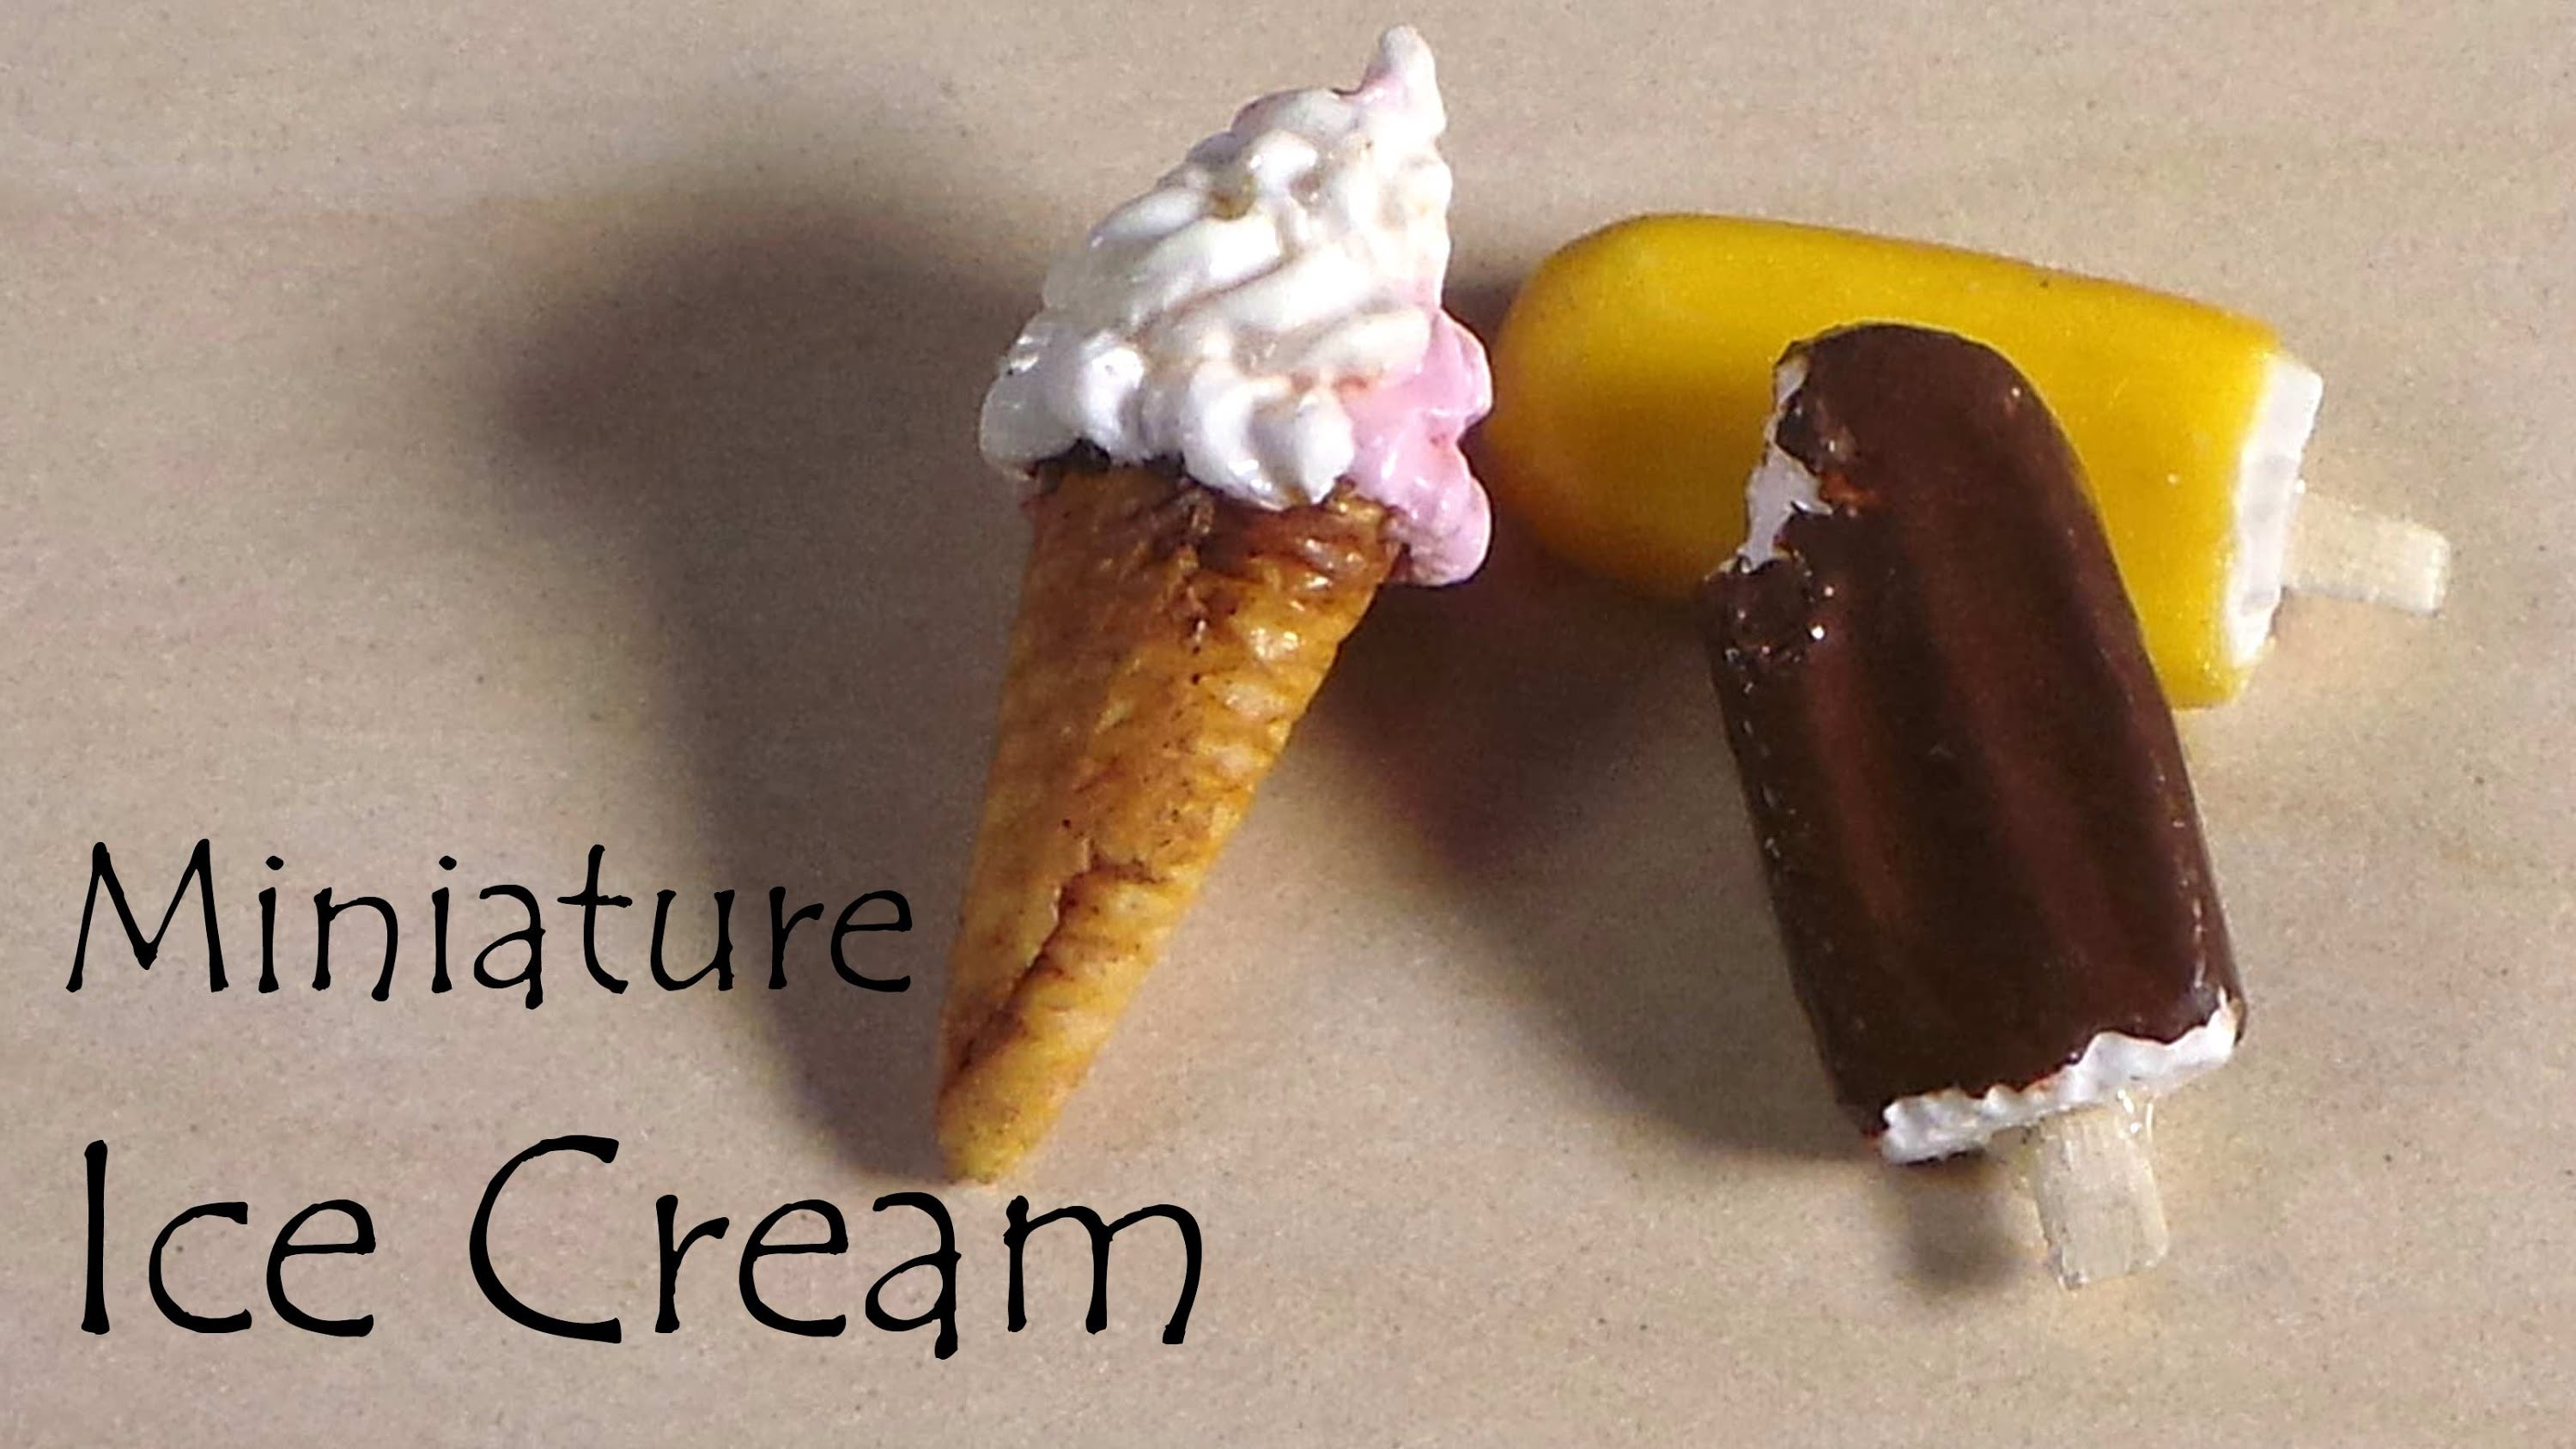 Miniature Popsicle.Creamsicle & Ice Cream Cone - Polymer Clay Tutorial